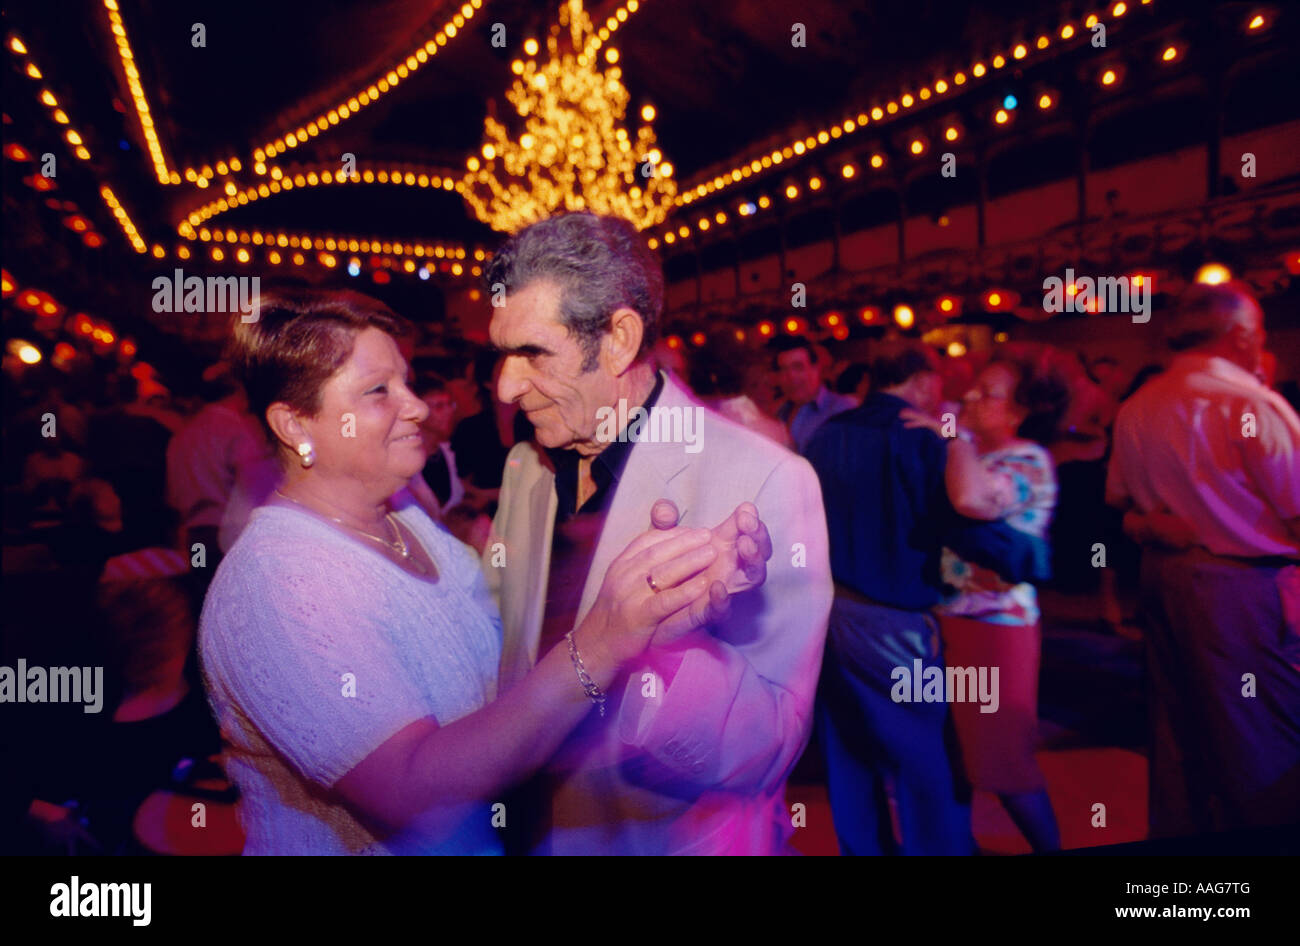 Older couples are dancing Cha Cha at the Paloma Club in Raval Barcelona Catalonia Spain Stock Photo